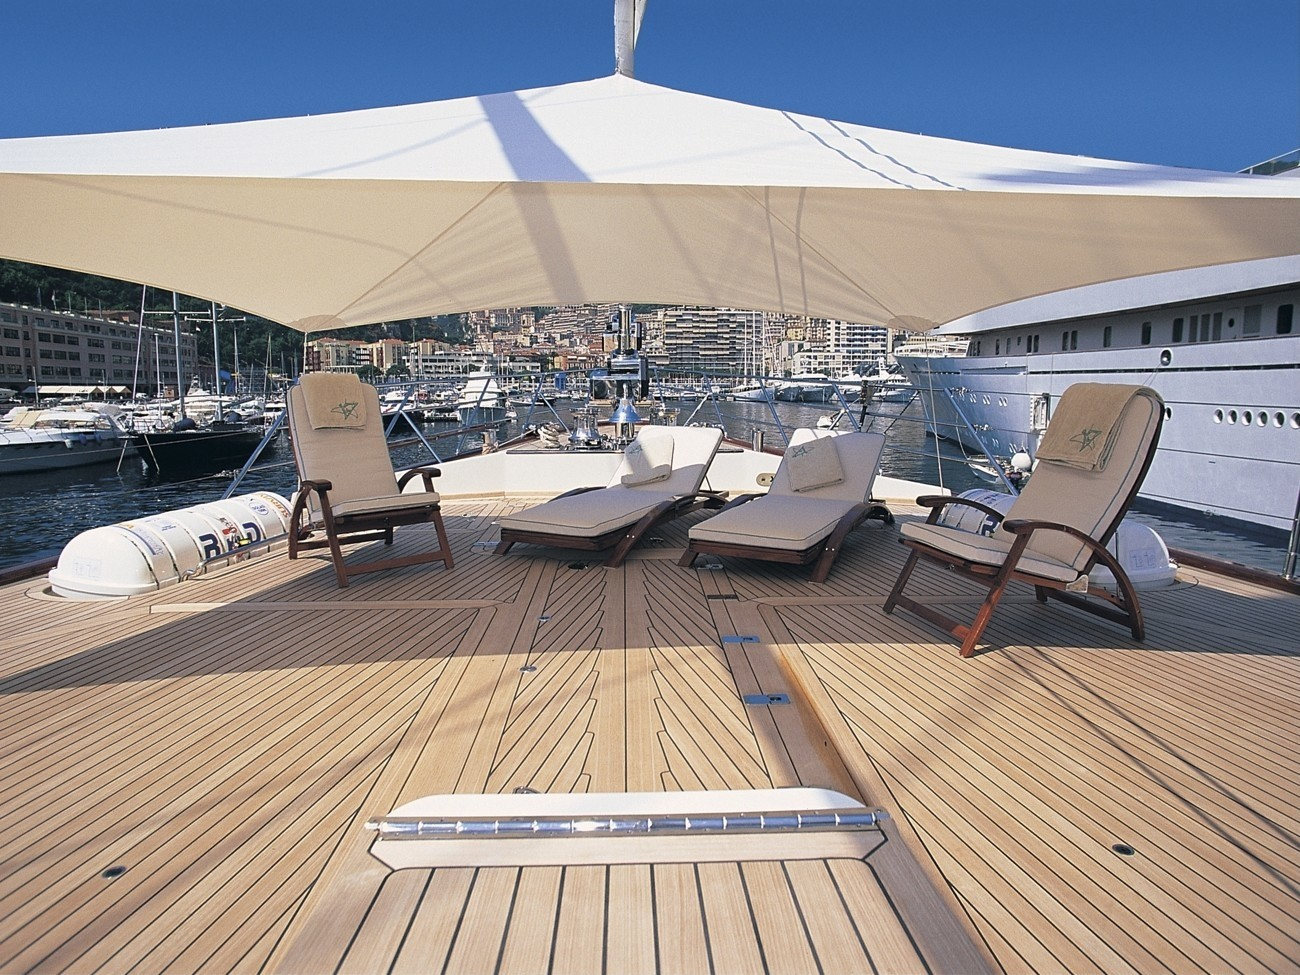 Sunshine Lounging On Board Yacht ATMOSPHERE